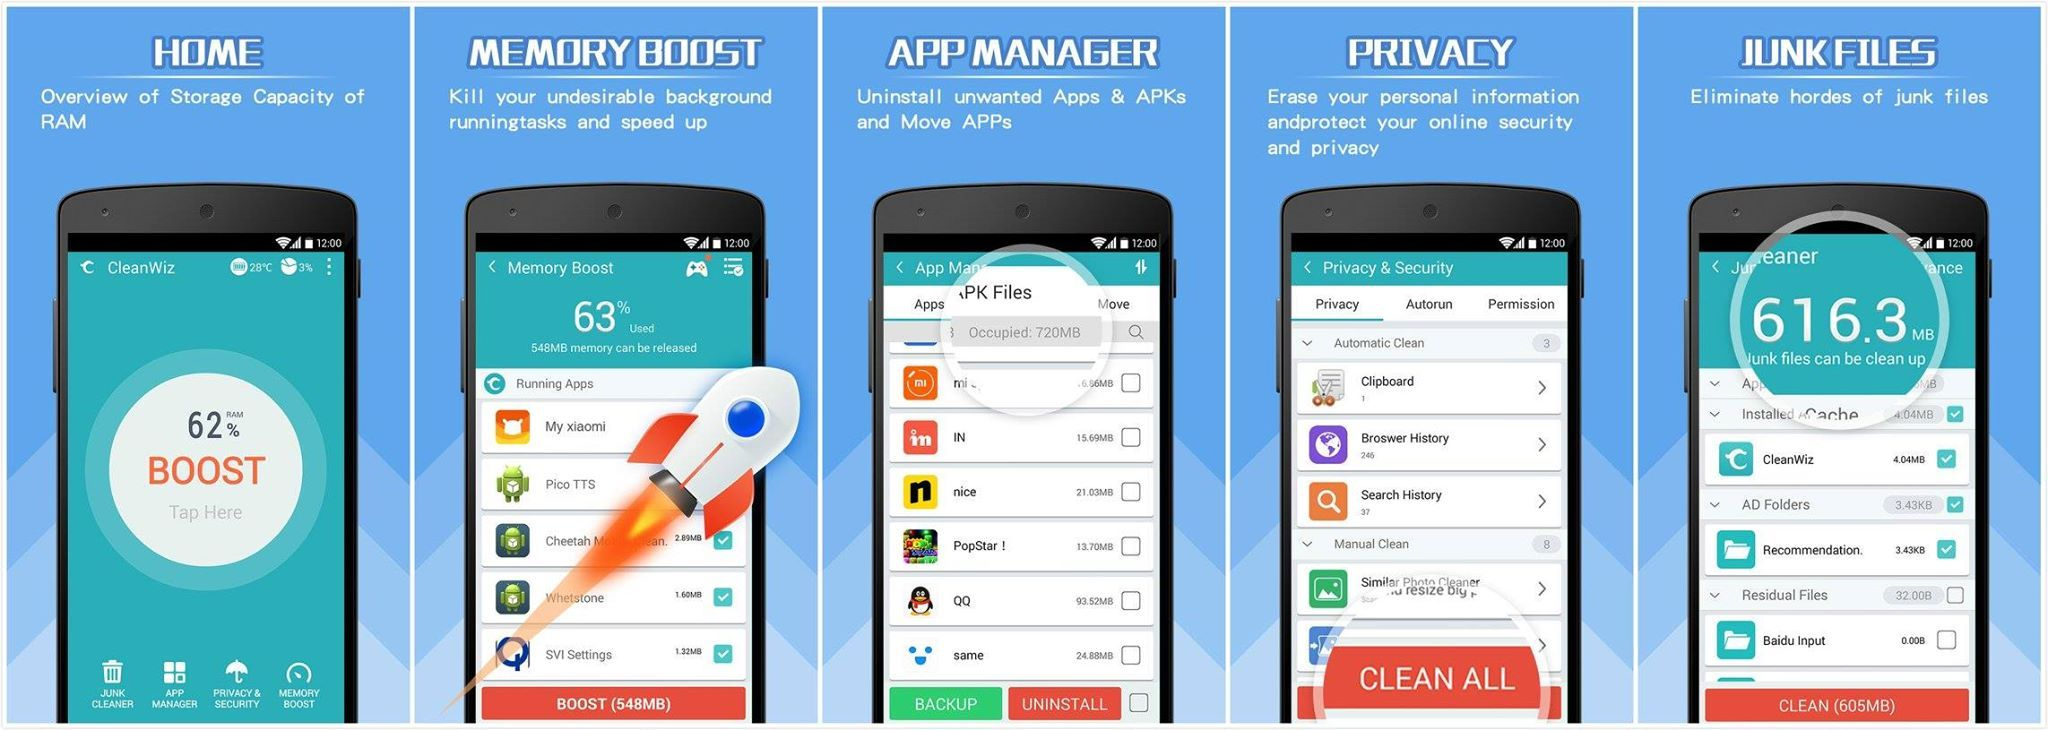 CleanWiz is the best cleaning tool to keep your Android ...